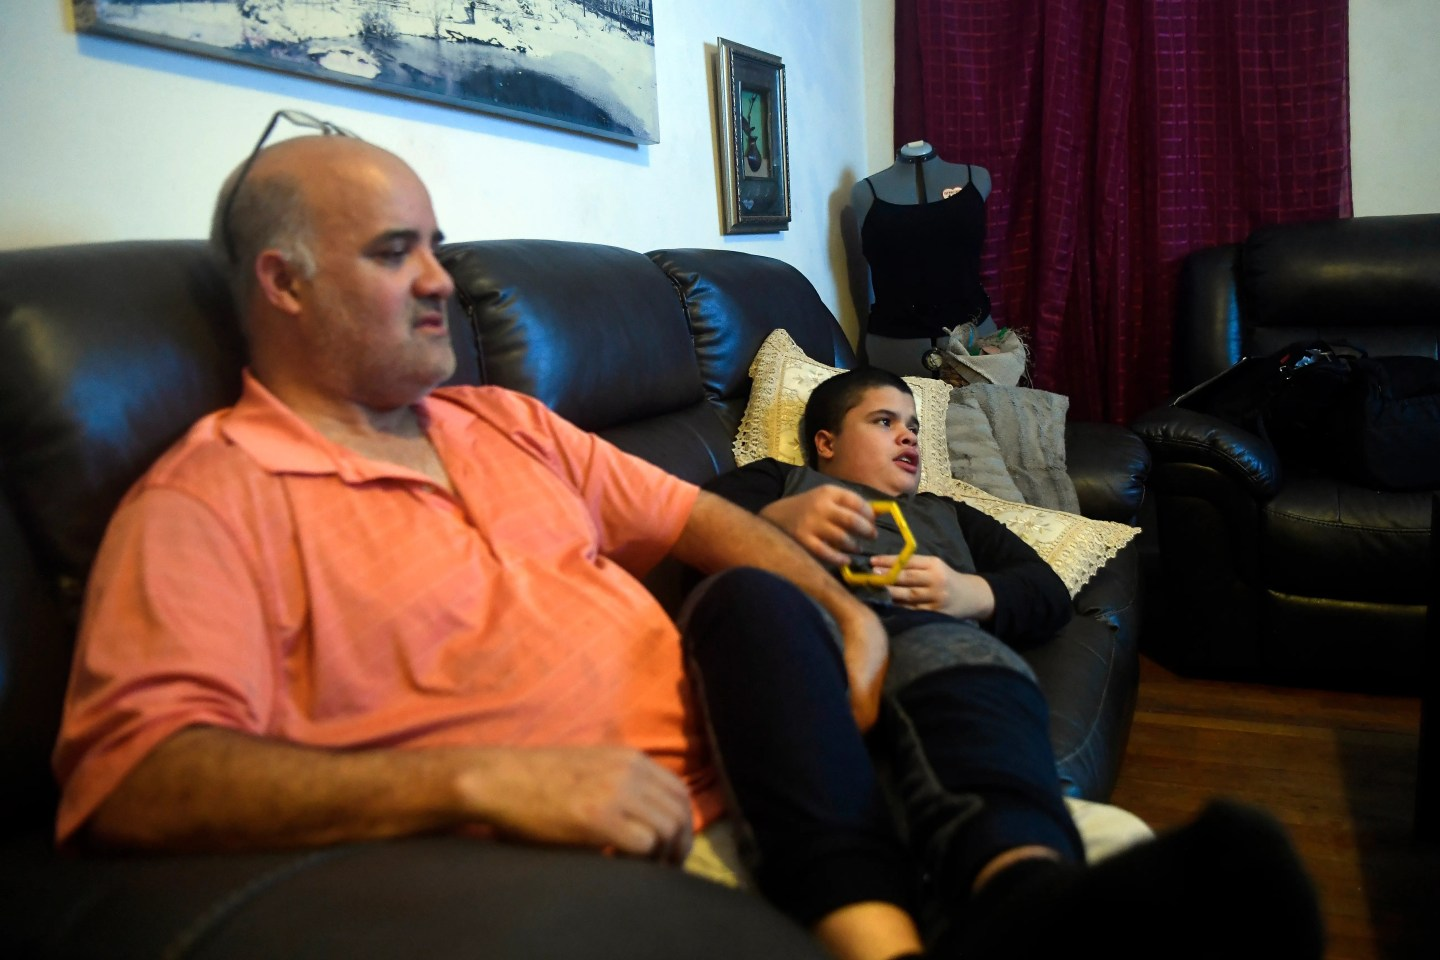 Henry Tejada watches TV with his son Carlos on Jan. 13, 2020.